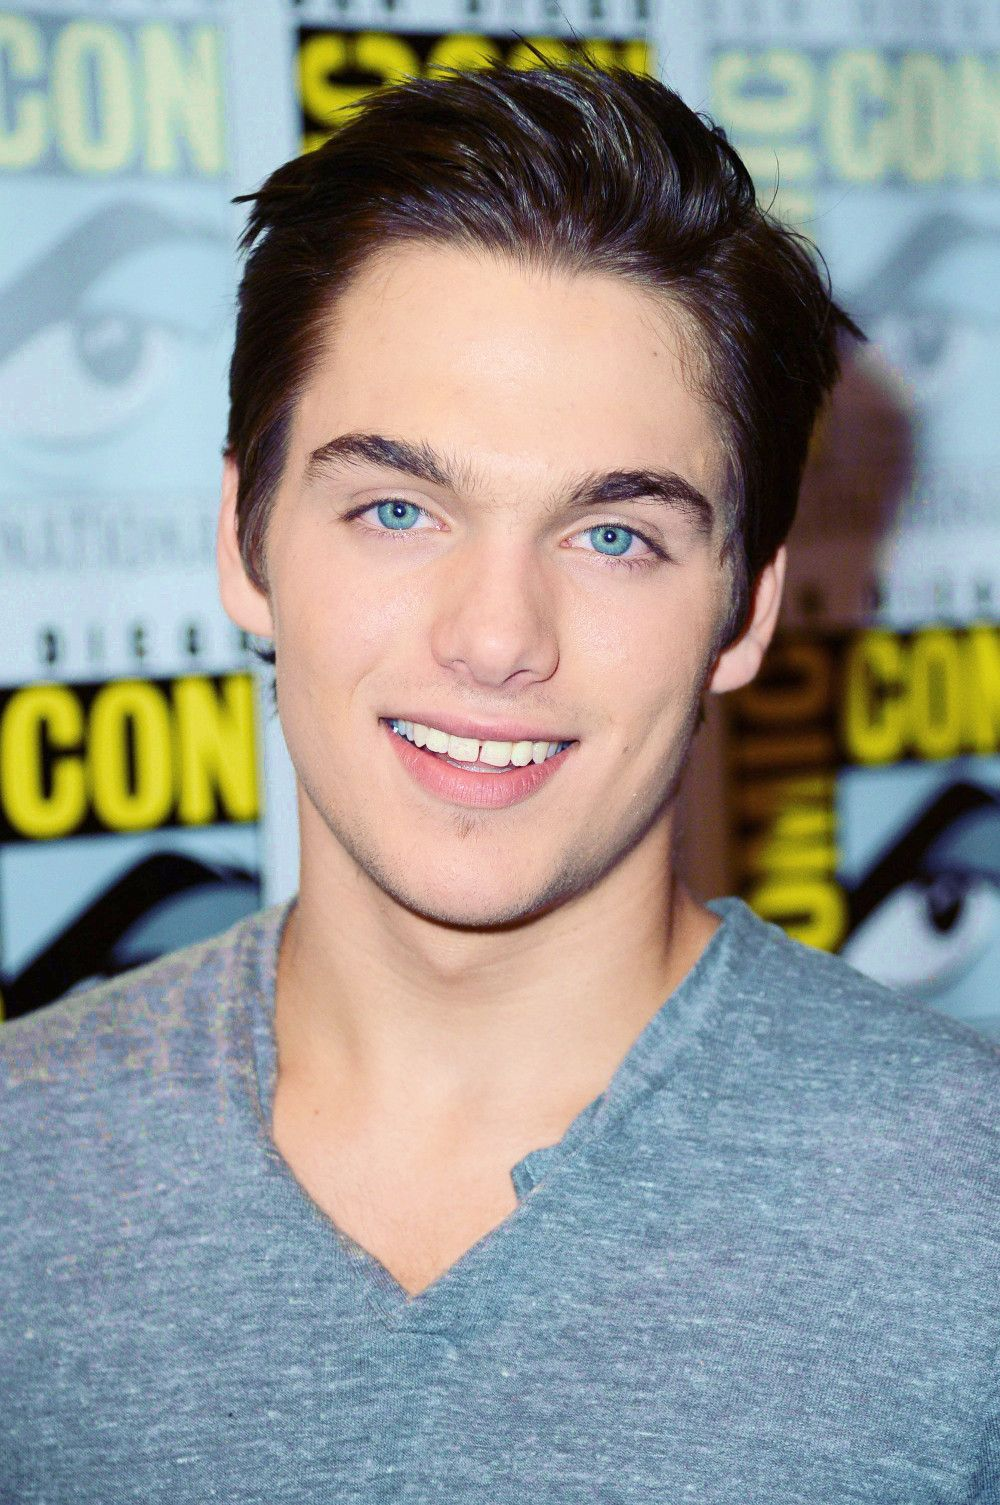 Dylan Sprayberry could play Jad Takarty in a show/film/musical